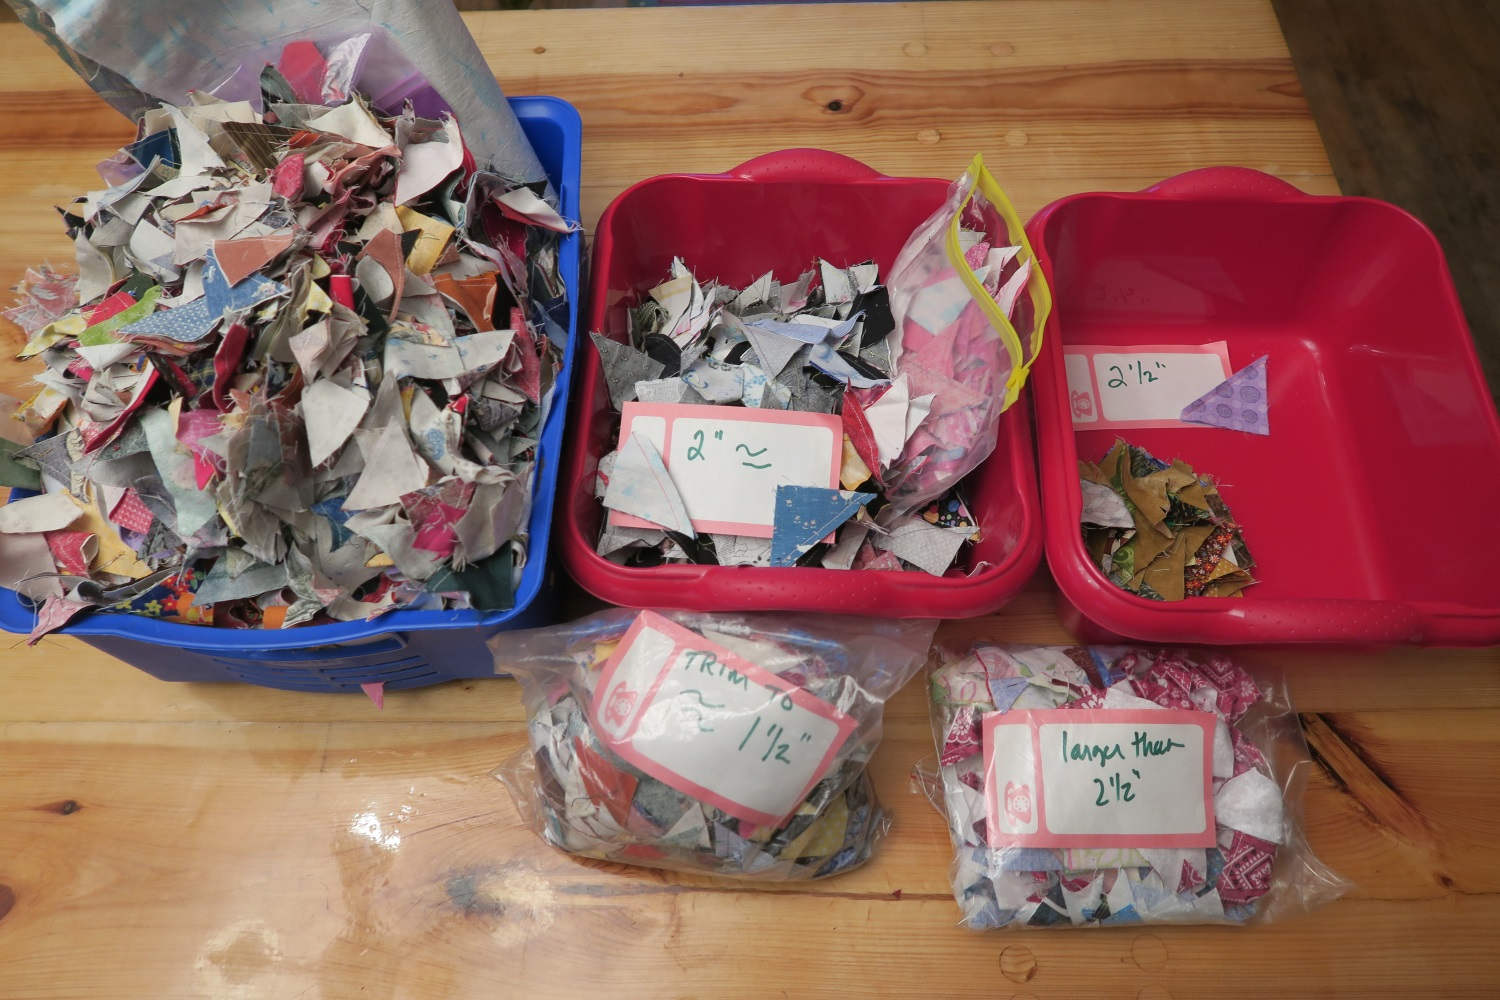 While not ALL of my half square triangles that I located in my sewing room, this is the majority of them. I didn't have them all sorted when I took this picture. I did find more when I cleaned out my sewing room a couple of weeks ago.